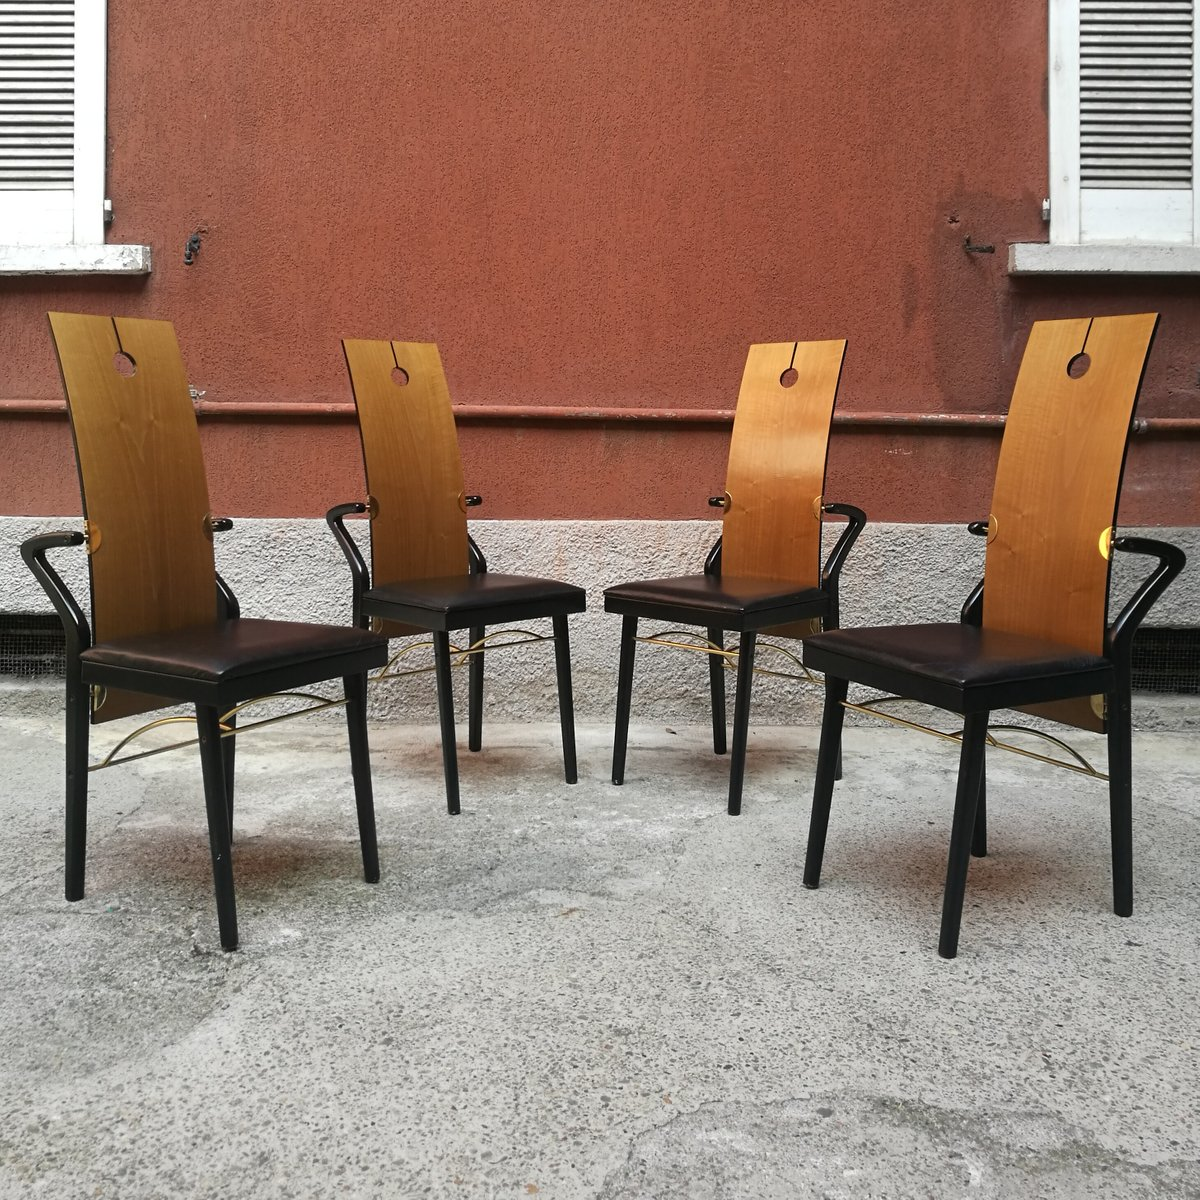 table 4 chairs by pierre cardin 1979 for sale at pamono. Black Bedroom Furniture Sets. Home Design Ideas